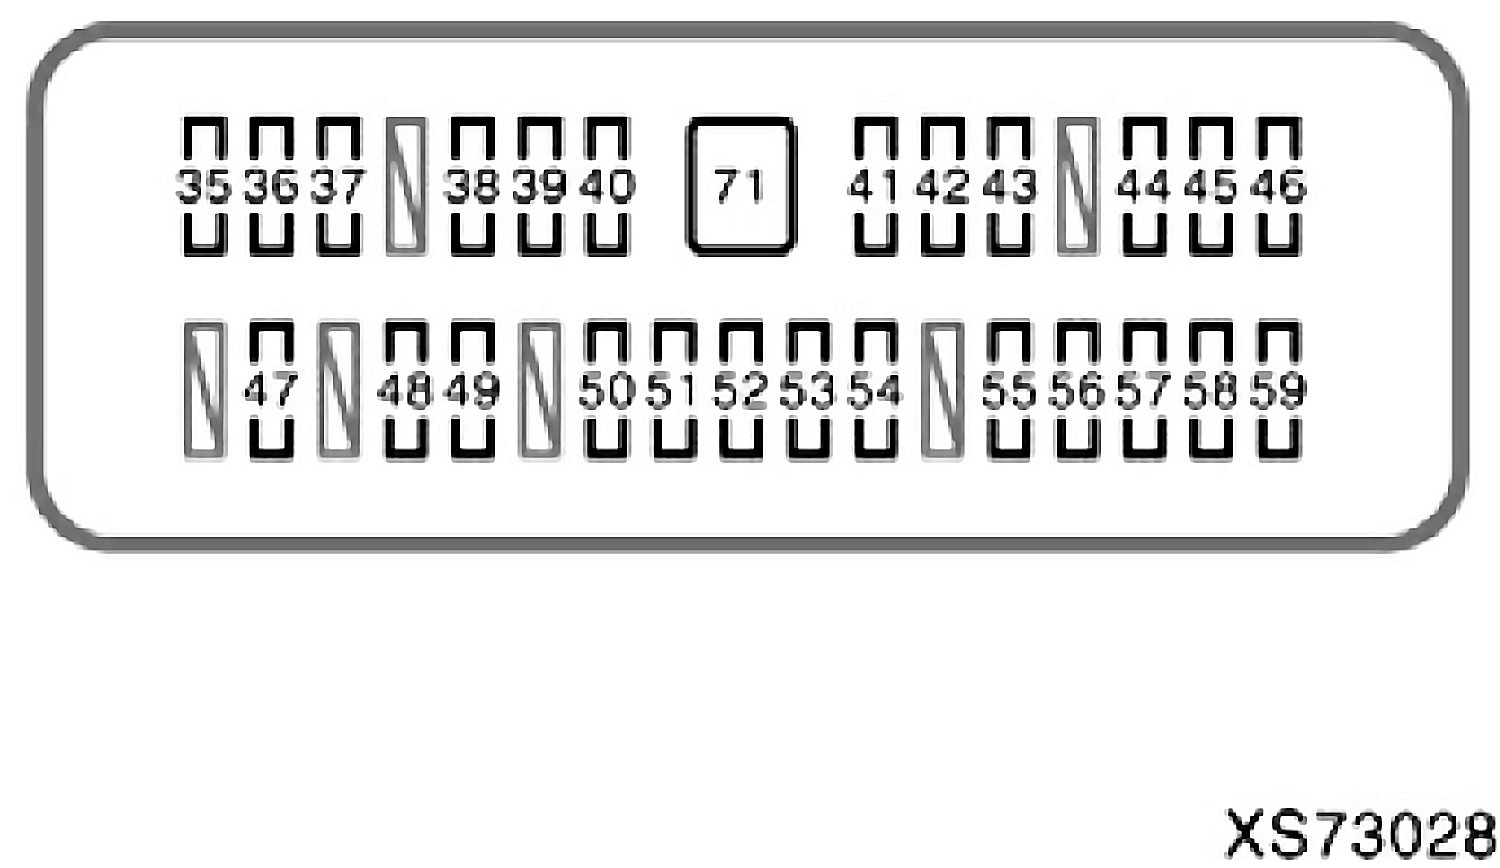 2007 Toyota Tundra Fuse Box Location